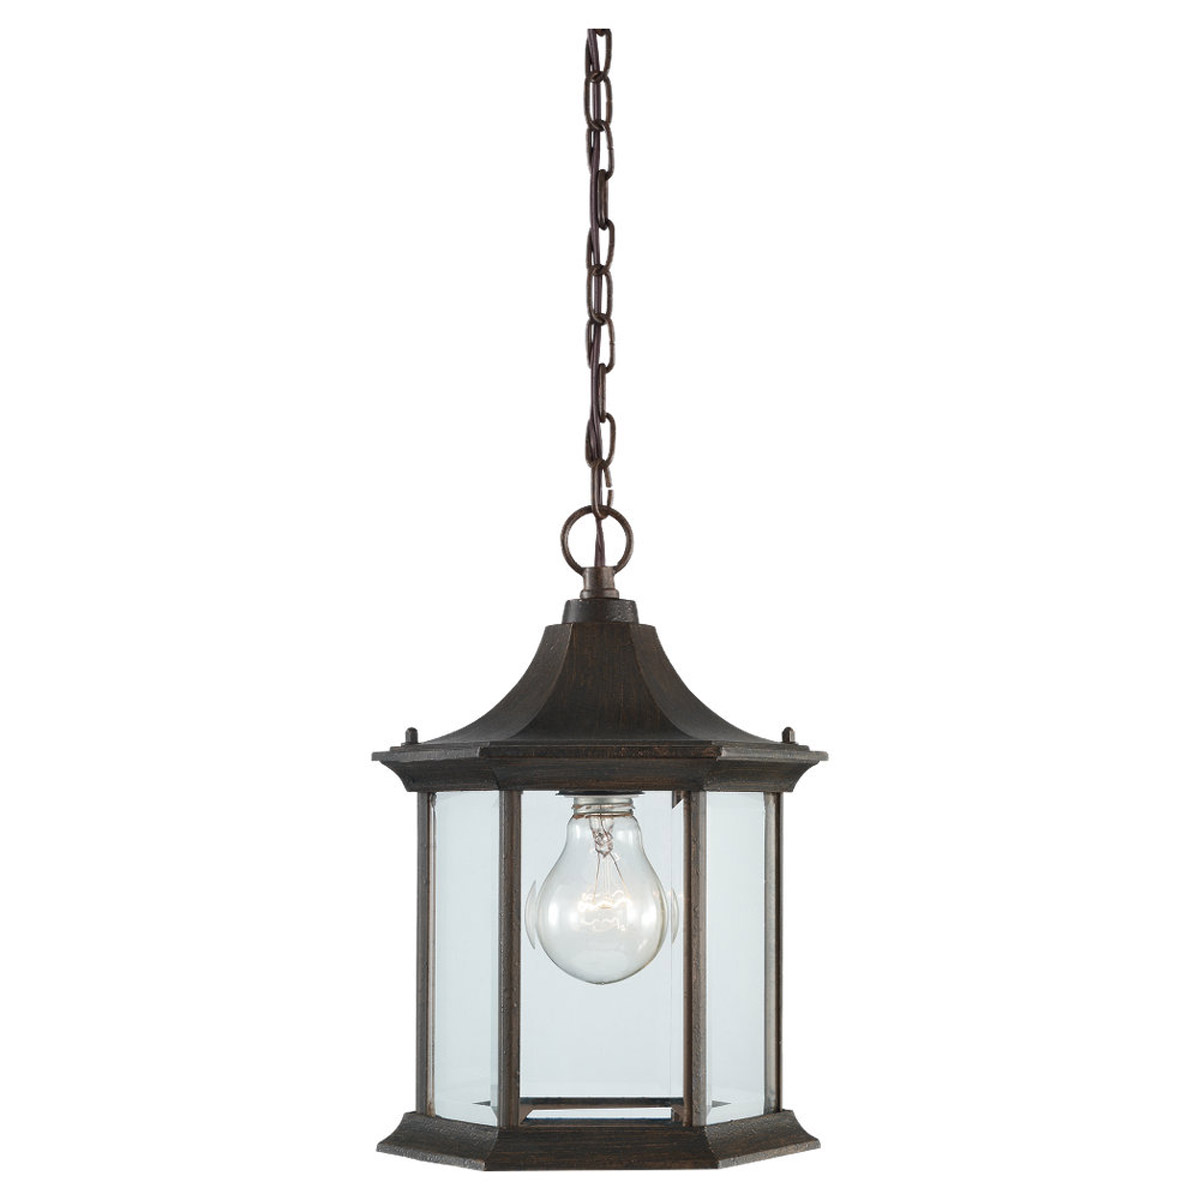 Sea Gull Lighting Ardsley Court 1 Light Outdoor Pendant in Textured Rust Patina 60136-08